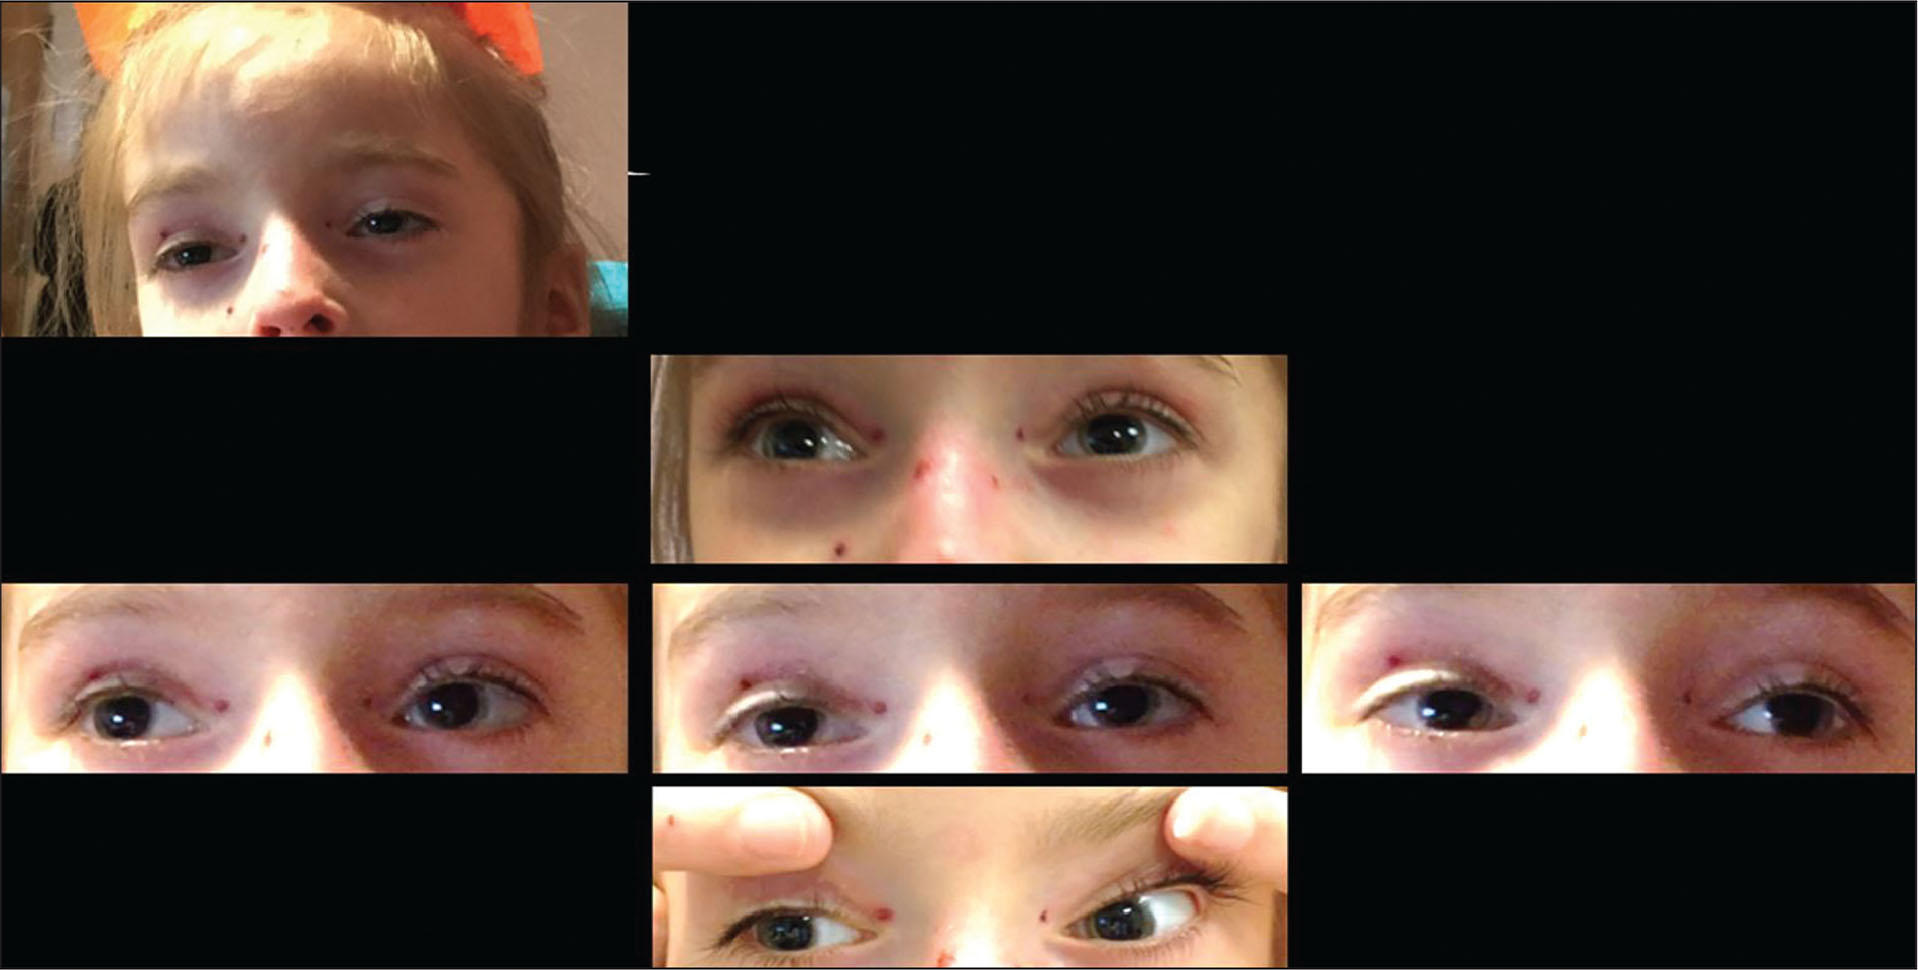 Case 2 at 6 years of age with ptosis, ophthalmoplegia, and epidermolysis bullosa simplex associated with muscular dystrophy and plectin deficiency.